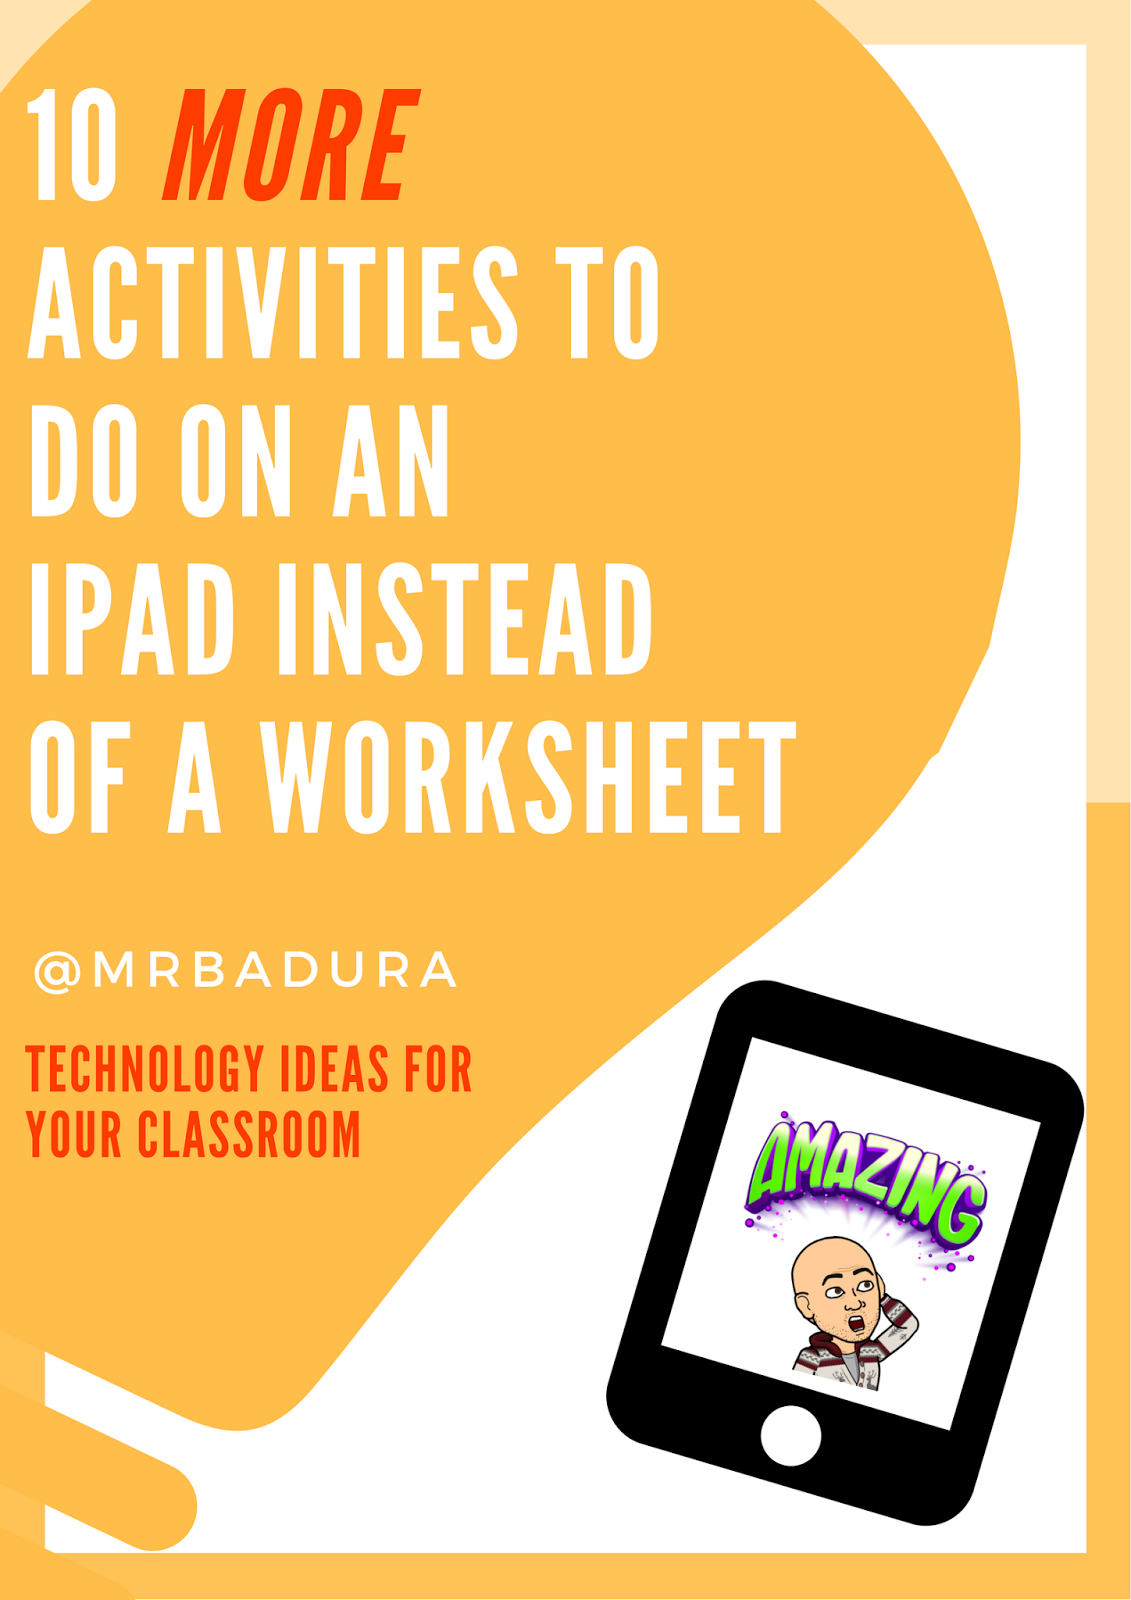 10 More Activities To Do On An Ipad Instead Of A Worksheet